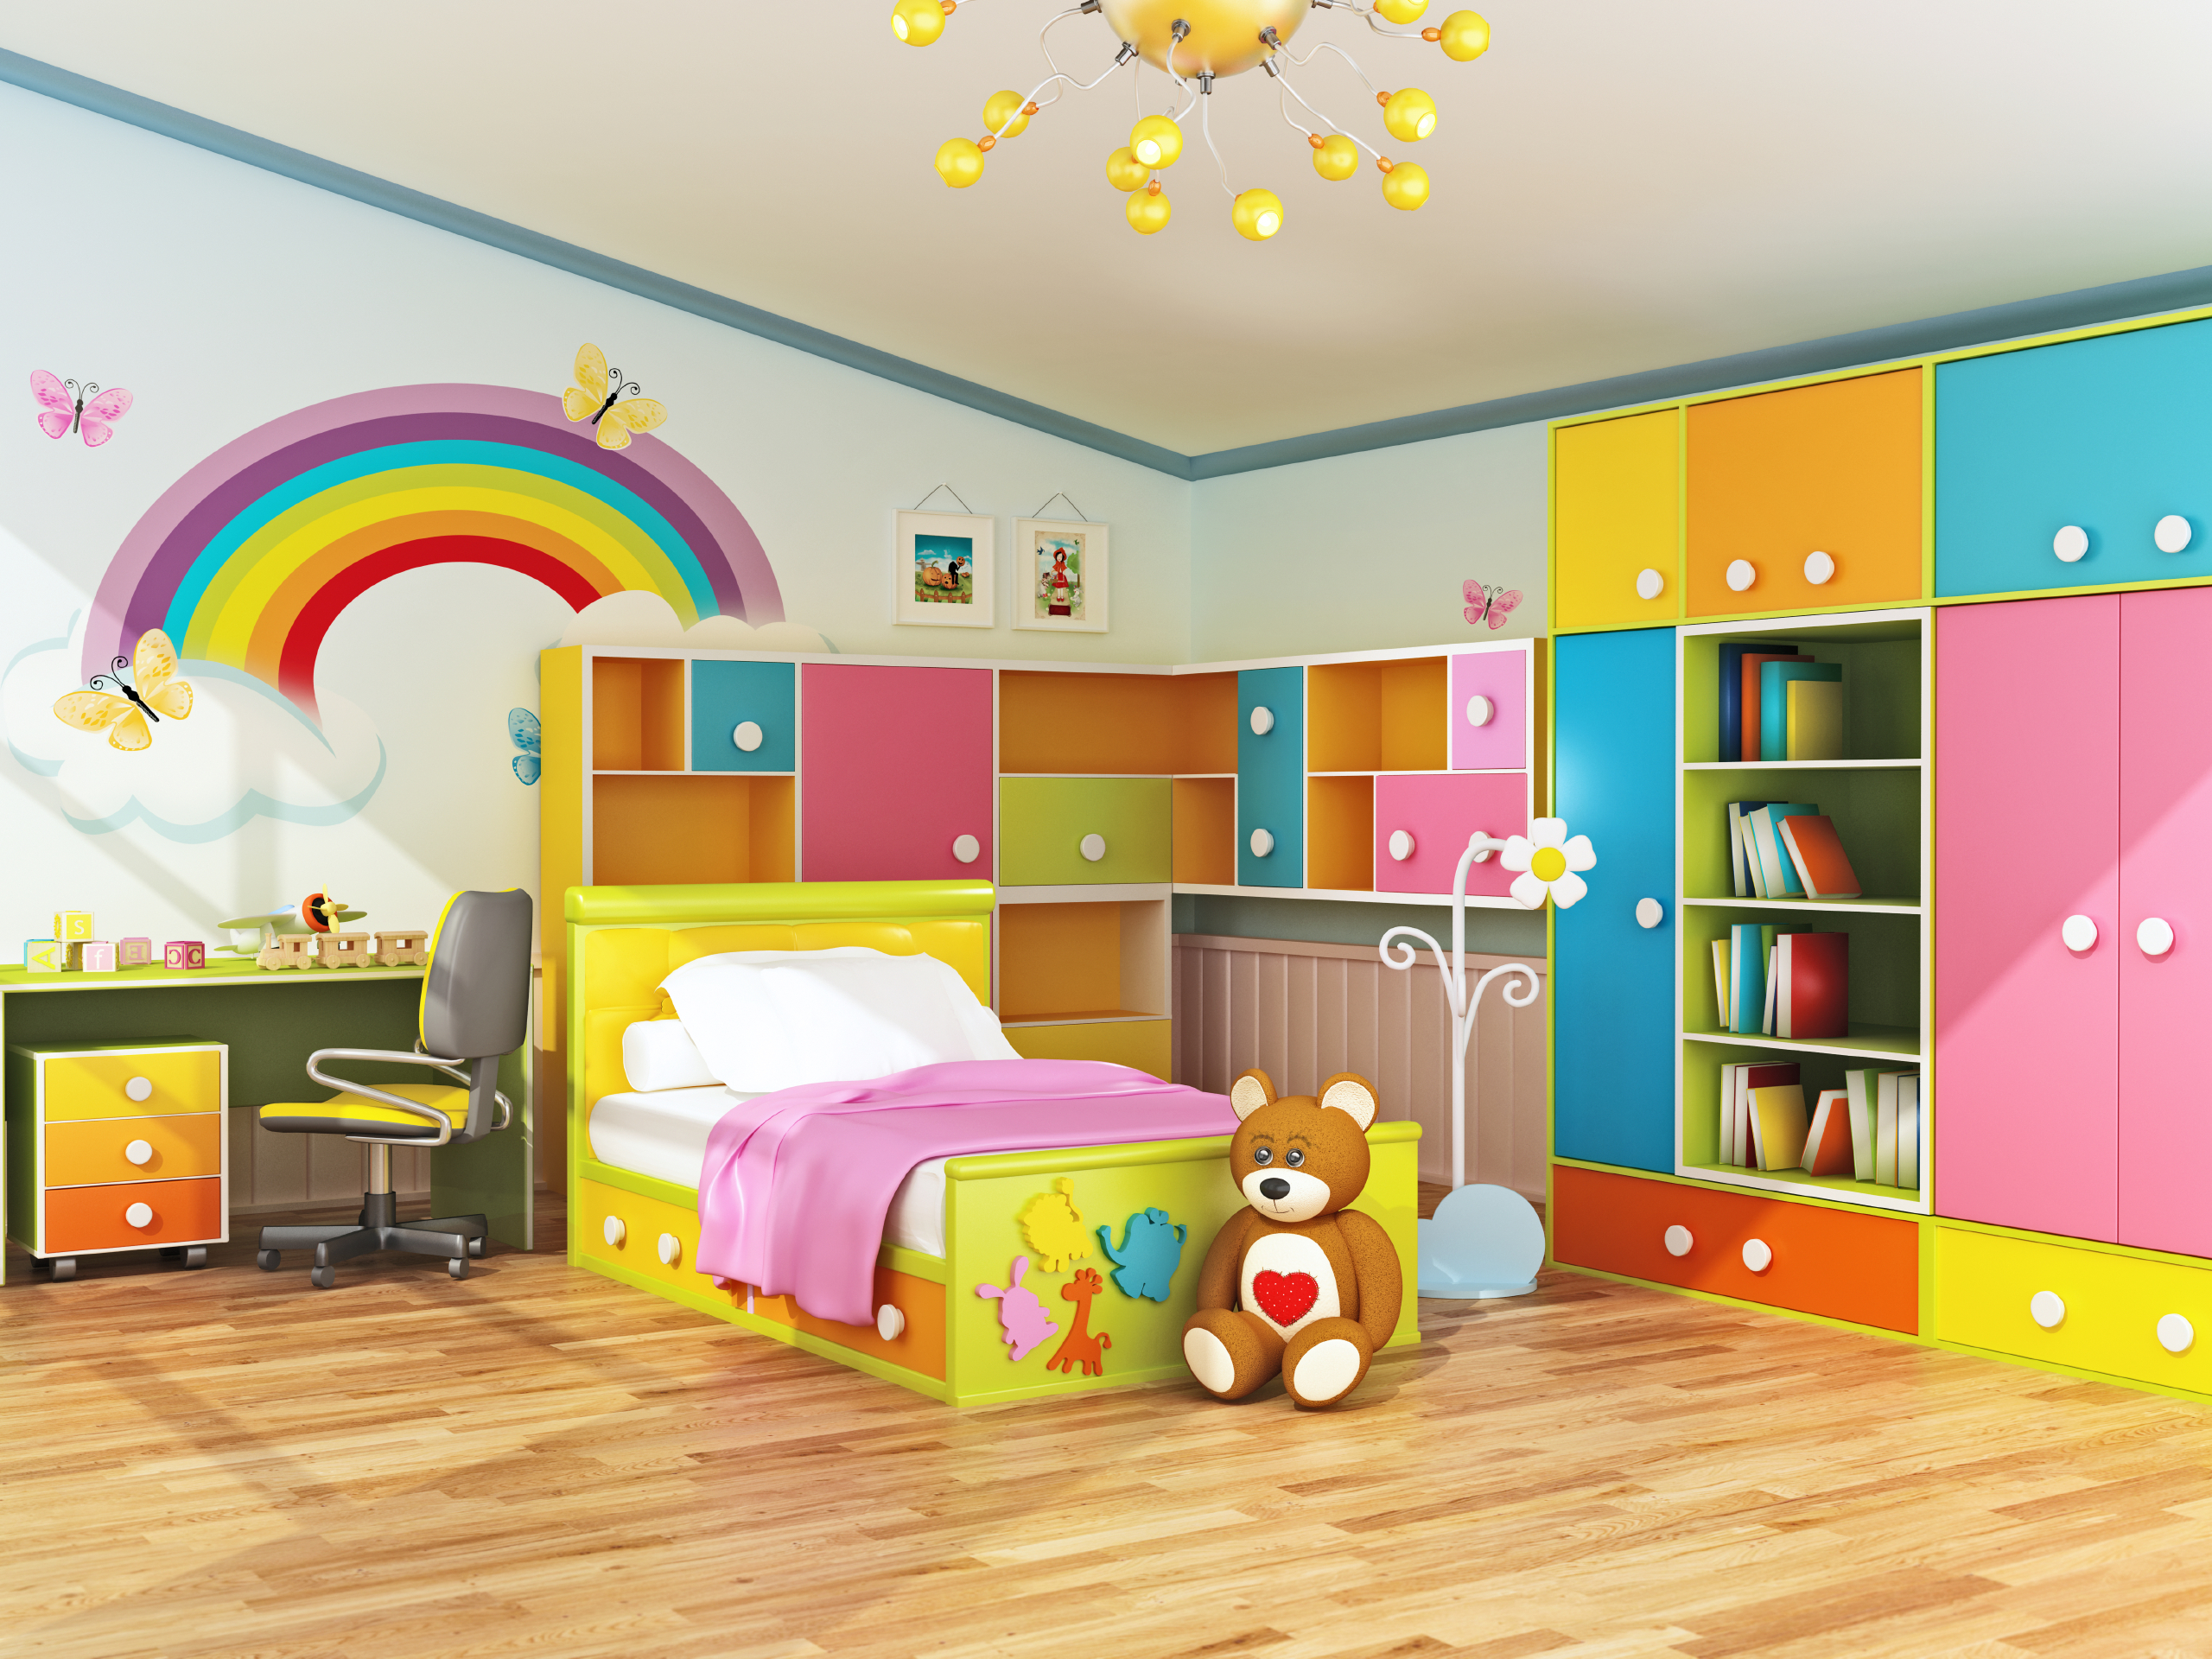 Plan Ahead When Decorating Kids 39 Bedrooms Rismedia 39 S Housecall